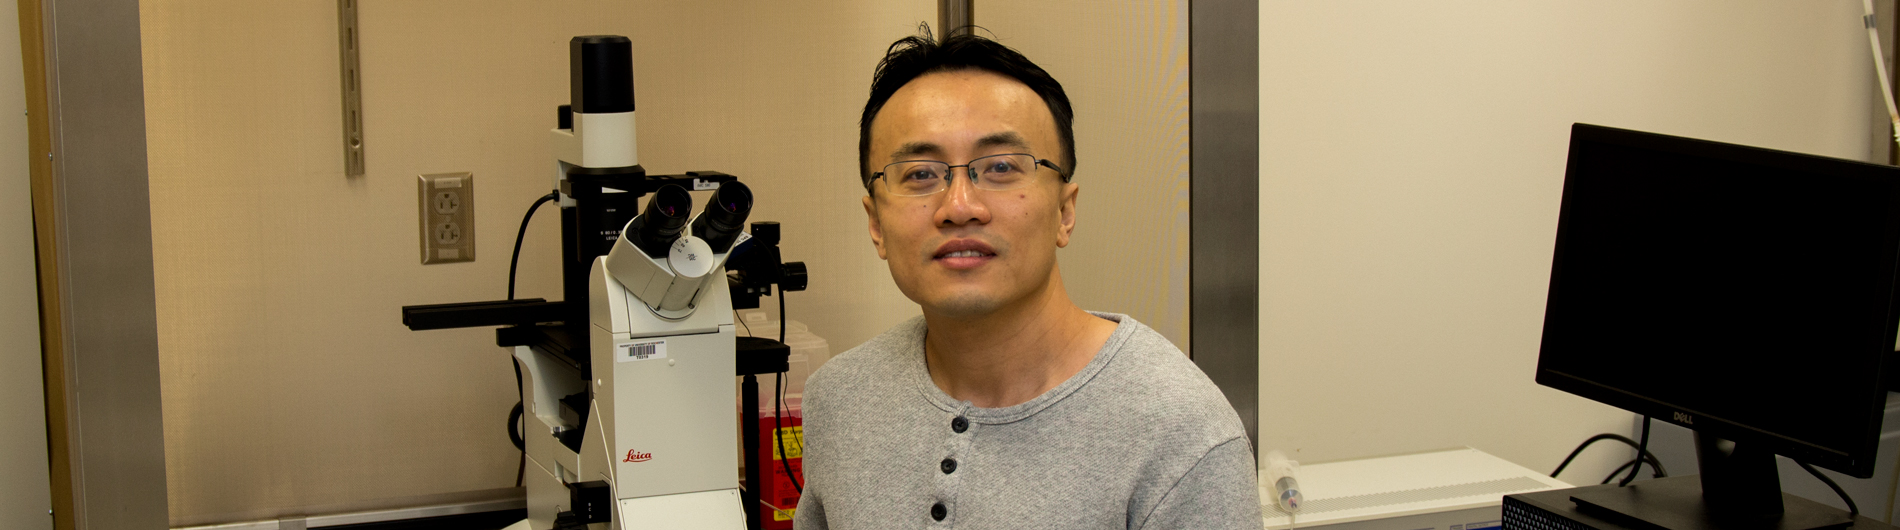 Yang Research - Lab Photo 2